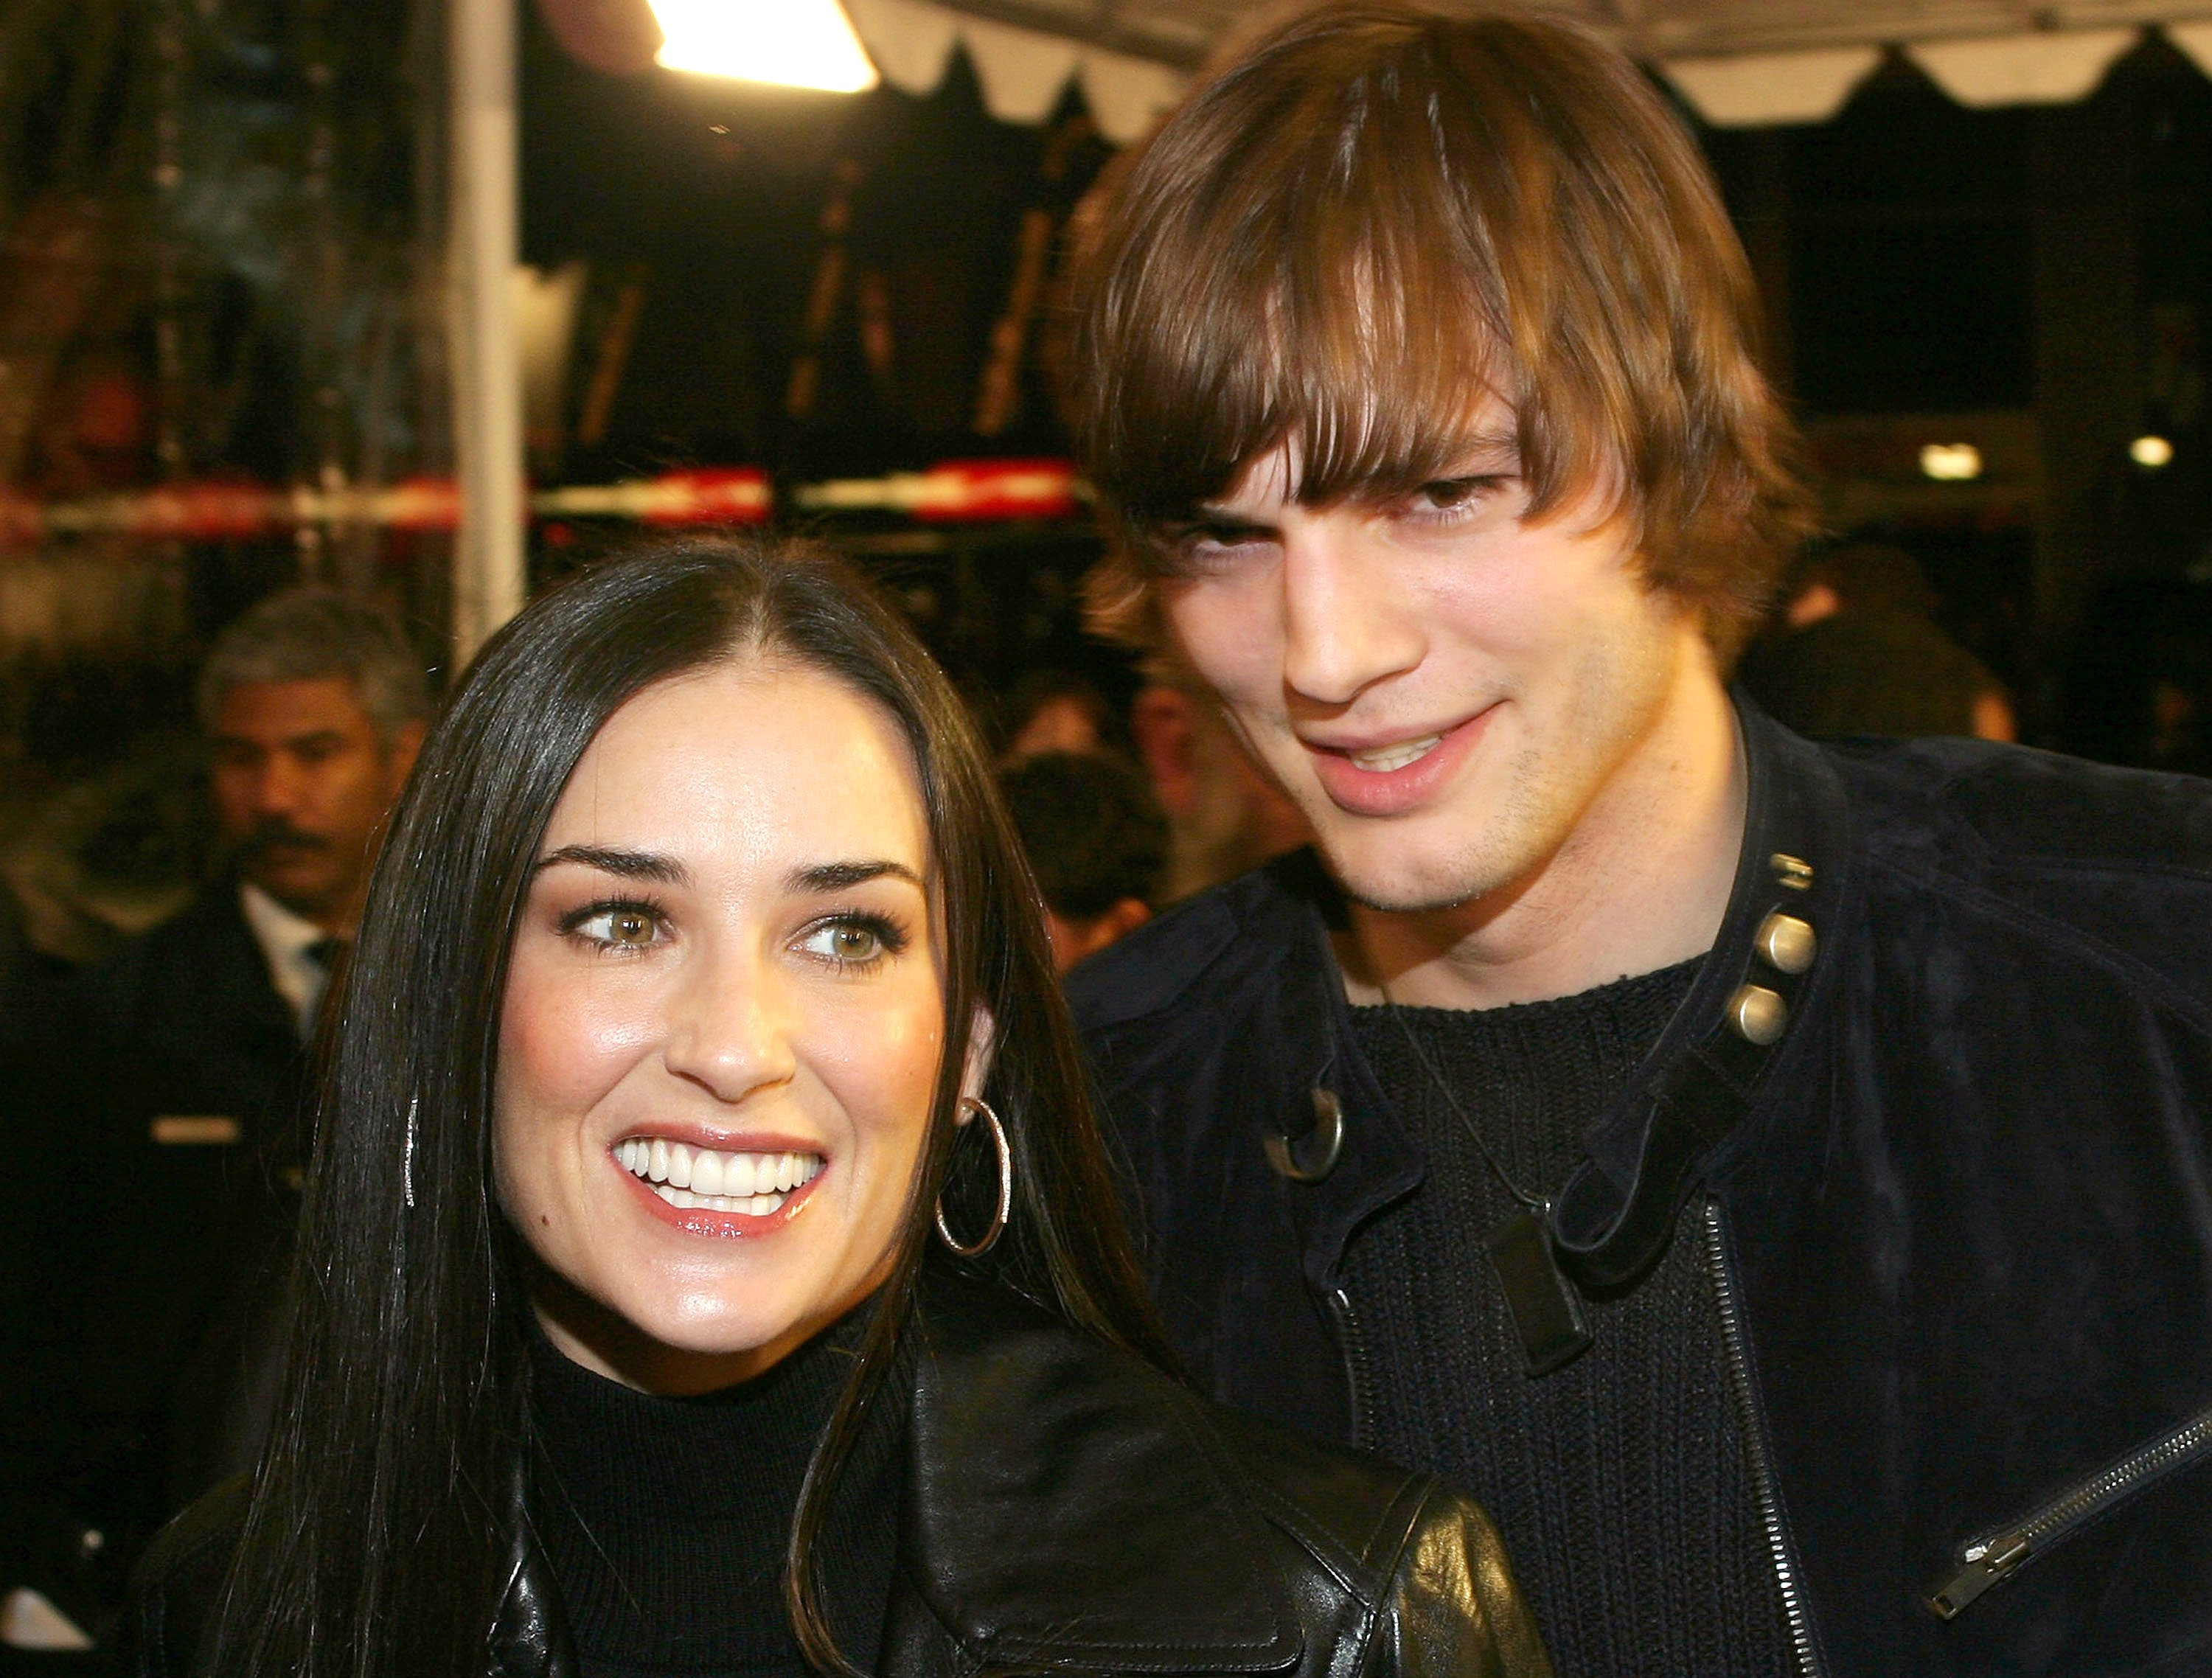 Ashton Kutcher and Demi Moore attend the Cheaper By The Dozen Premiere | Source: Getty Images